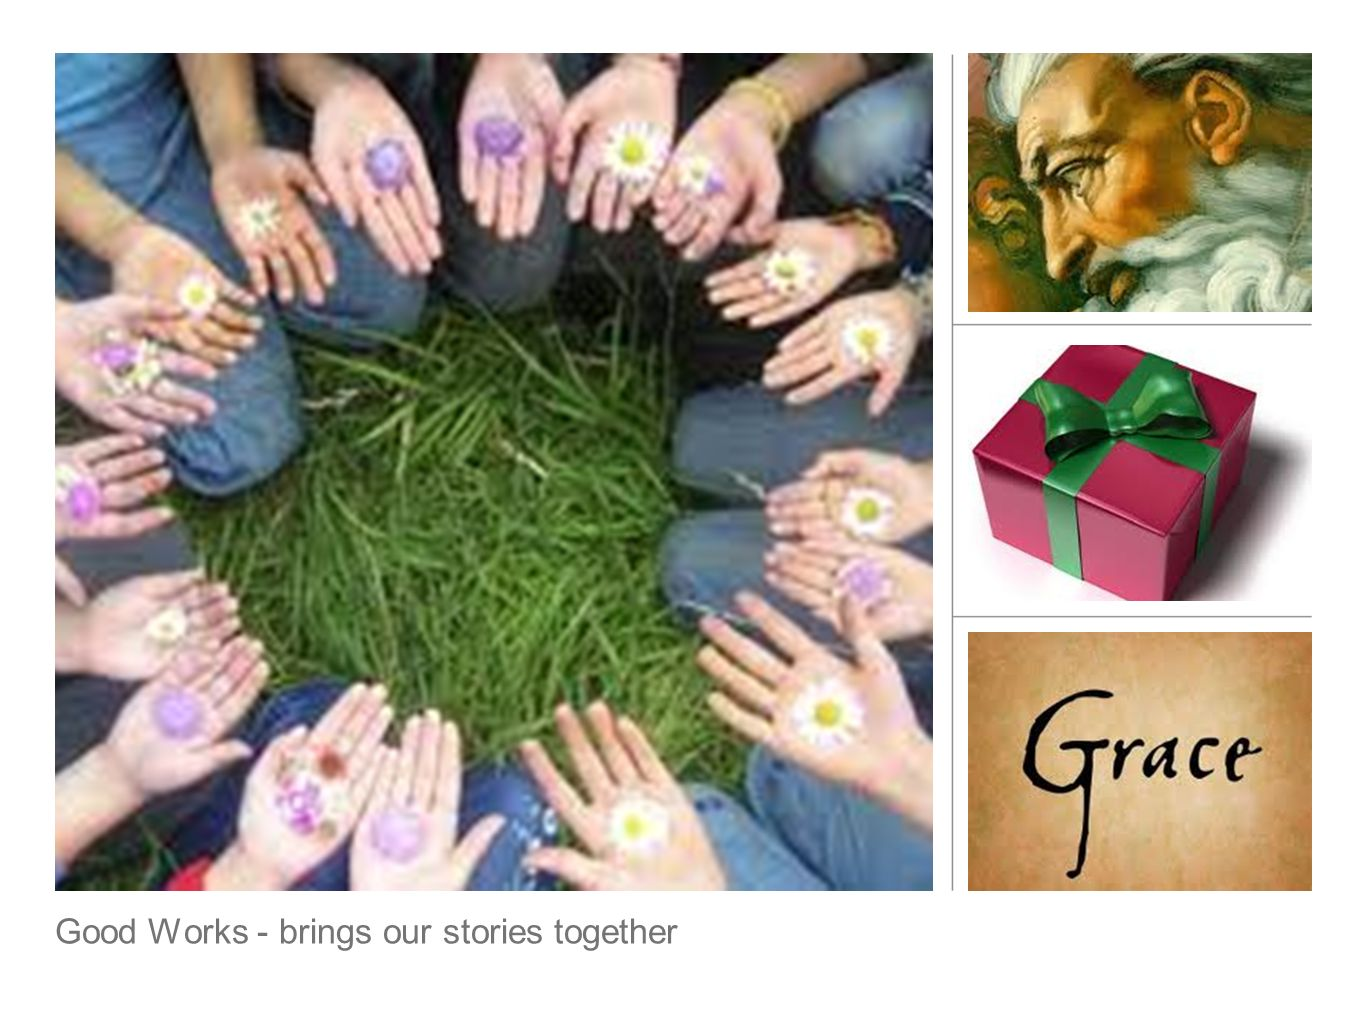 Good Works - brings our stories together